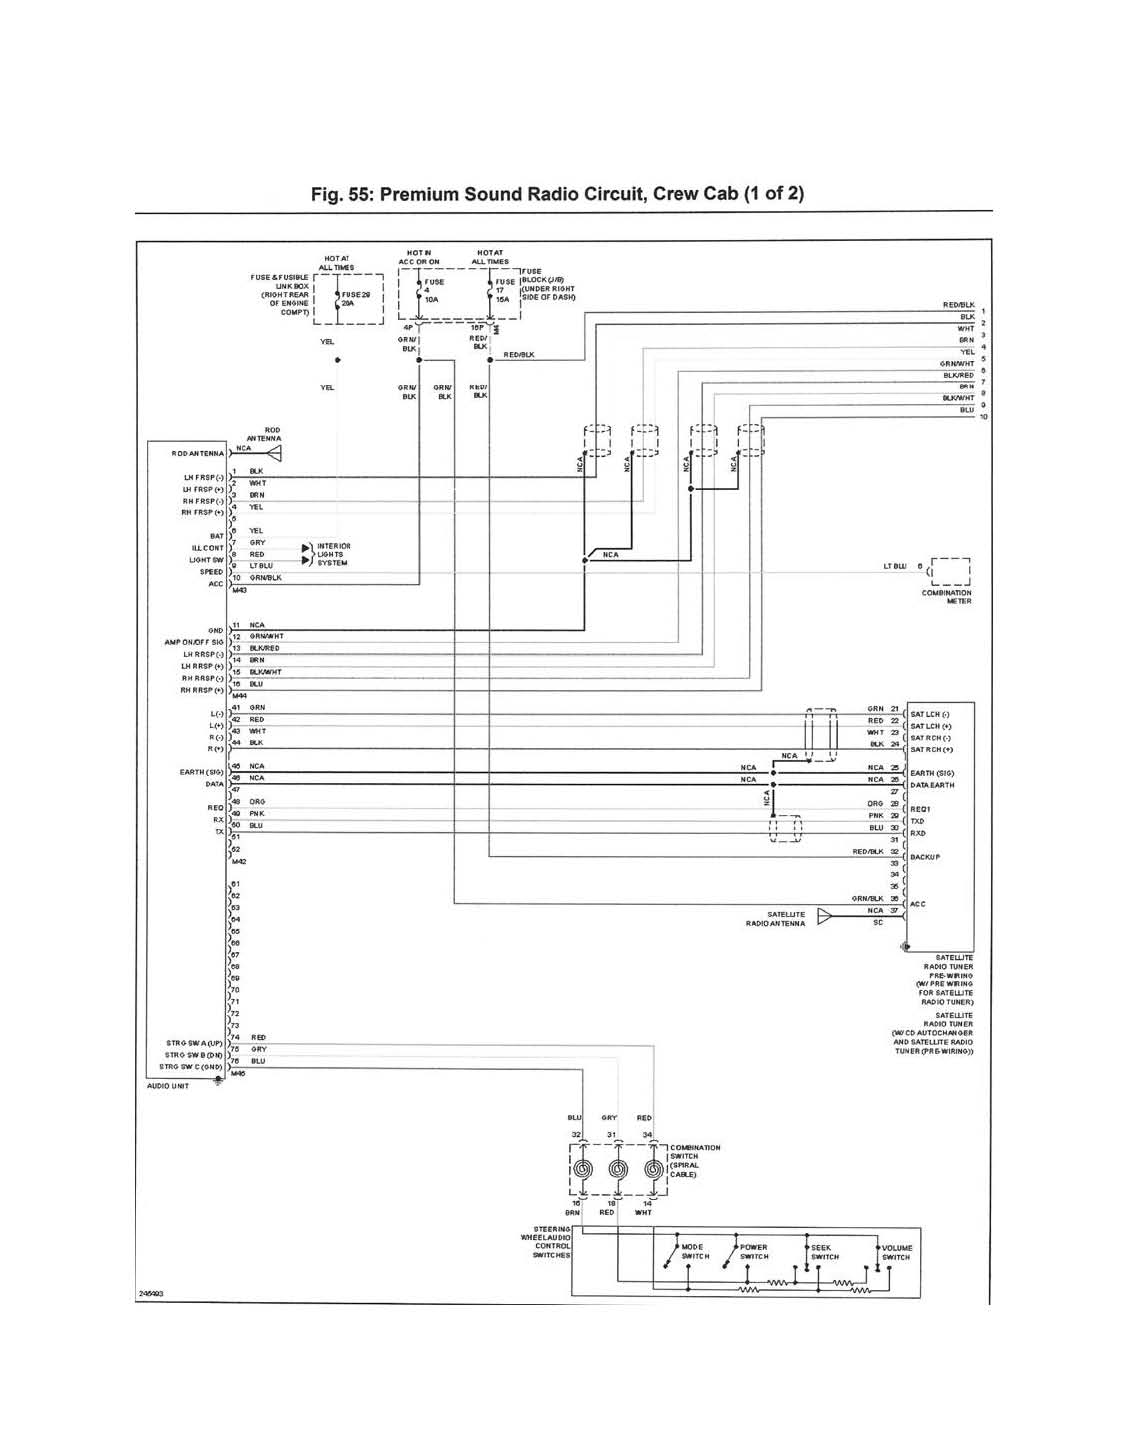 2012 Nissan Frontier Crew Cab Radio Wiring Diagram Smart 2005 Maxima Car Stereo Rockford Fosgate Bose For 1996